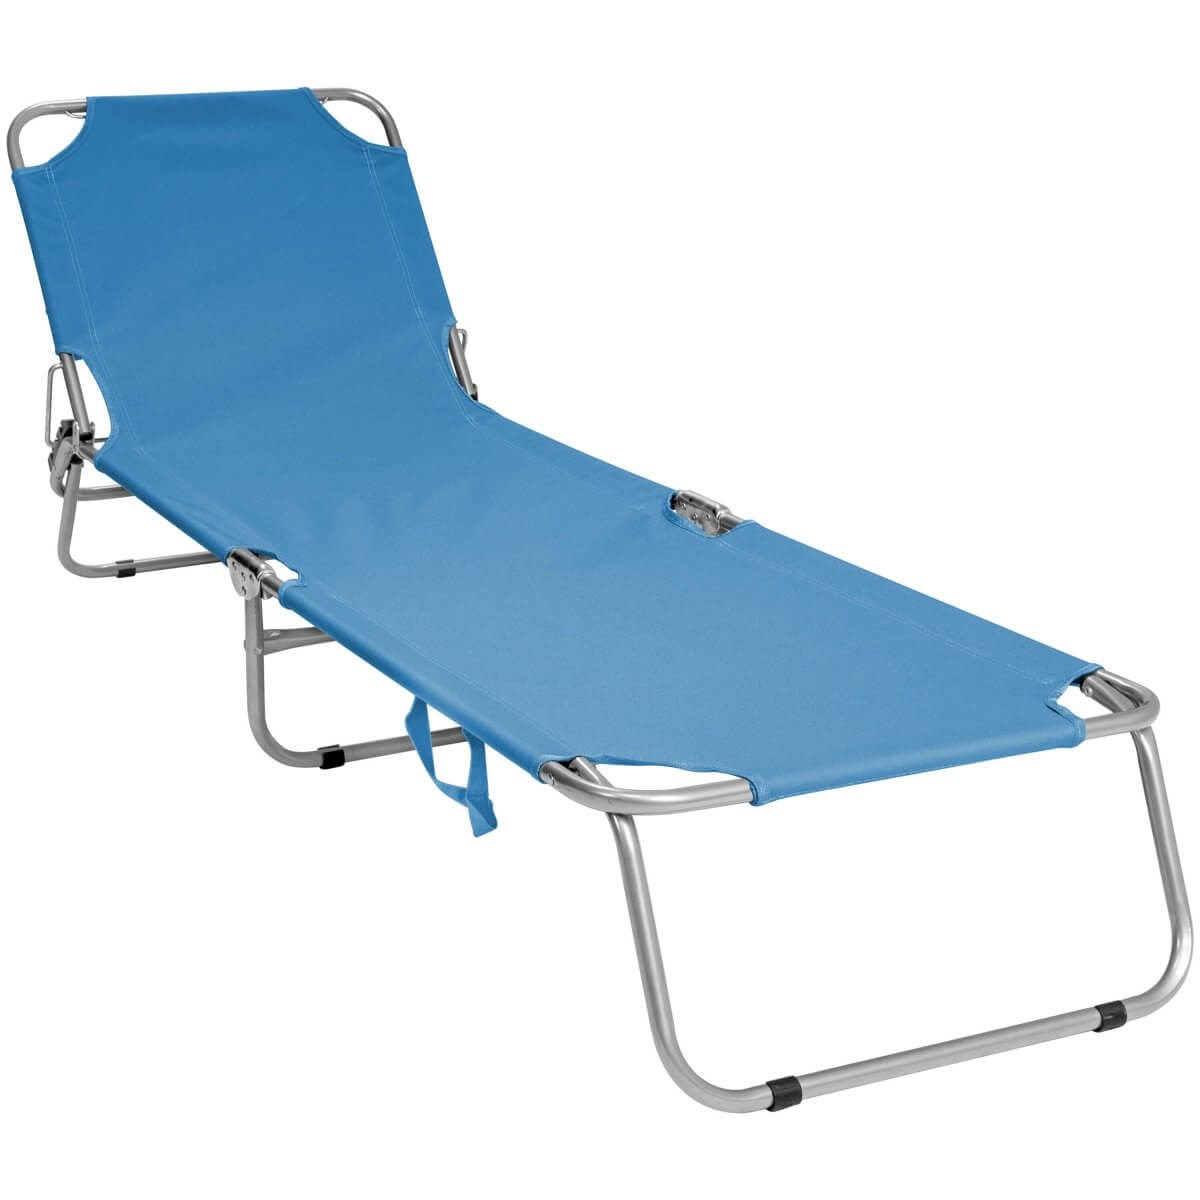 Folding Sun Lounger Available in 3 Colours